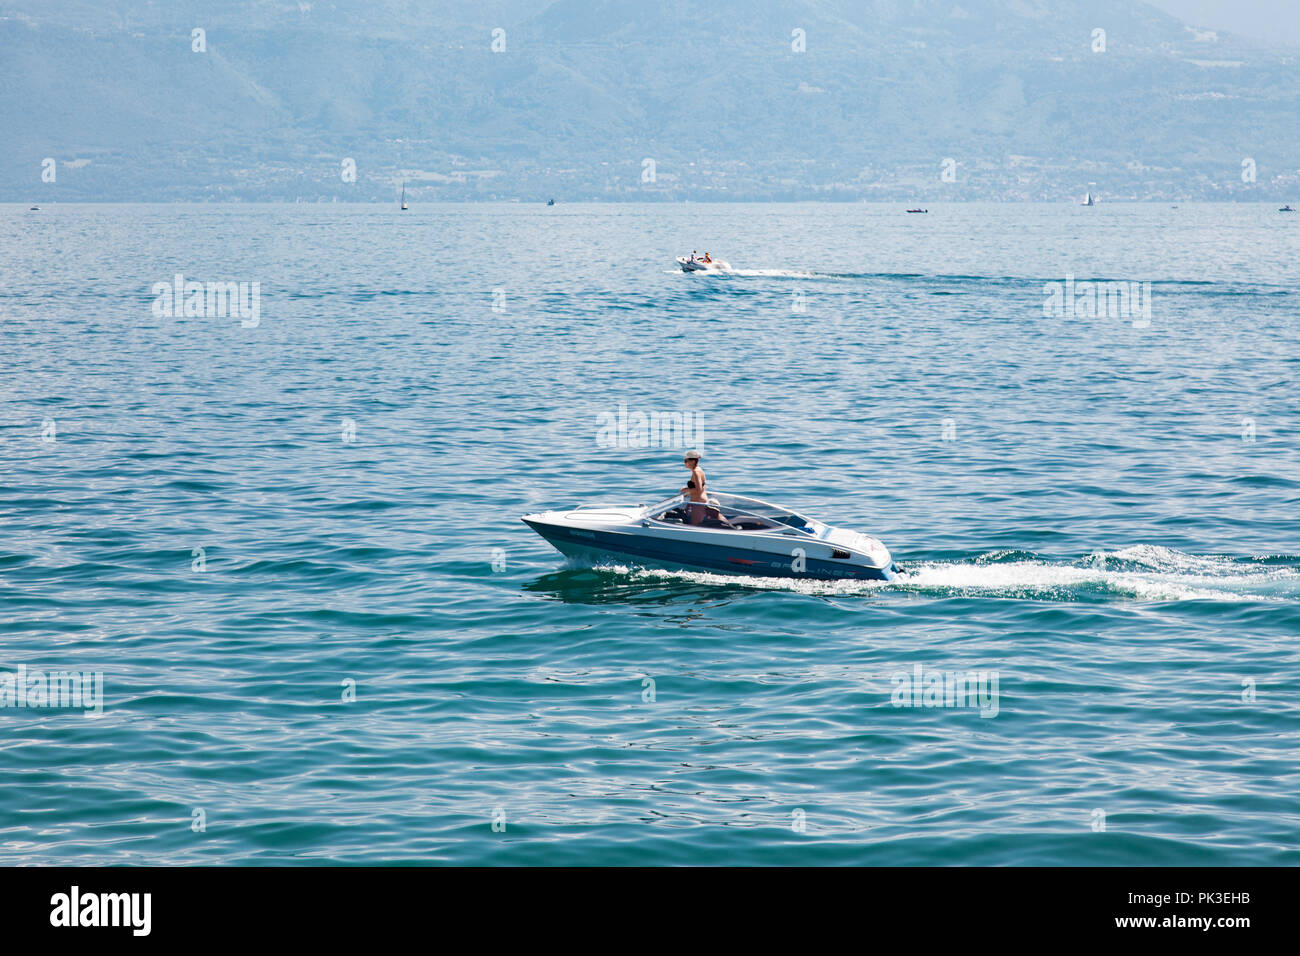 Couple on speed boat on Lake Leman (Geneva Lake) on beautiful sunny summer day - Stock Image